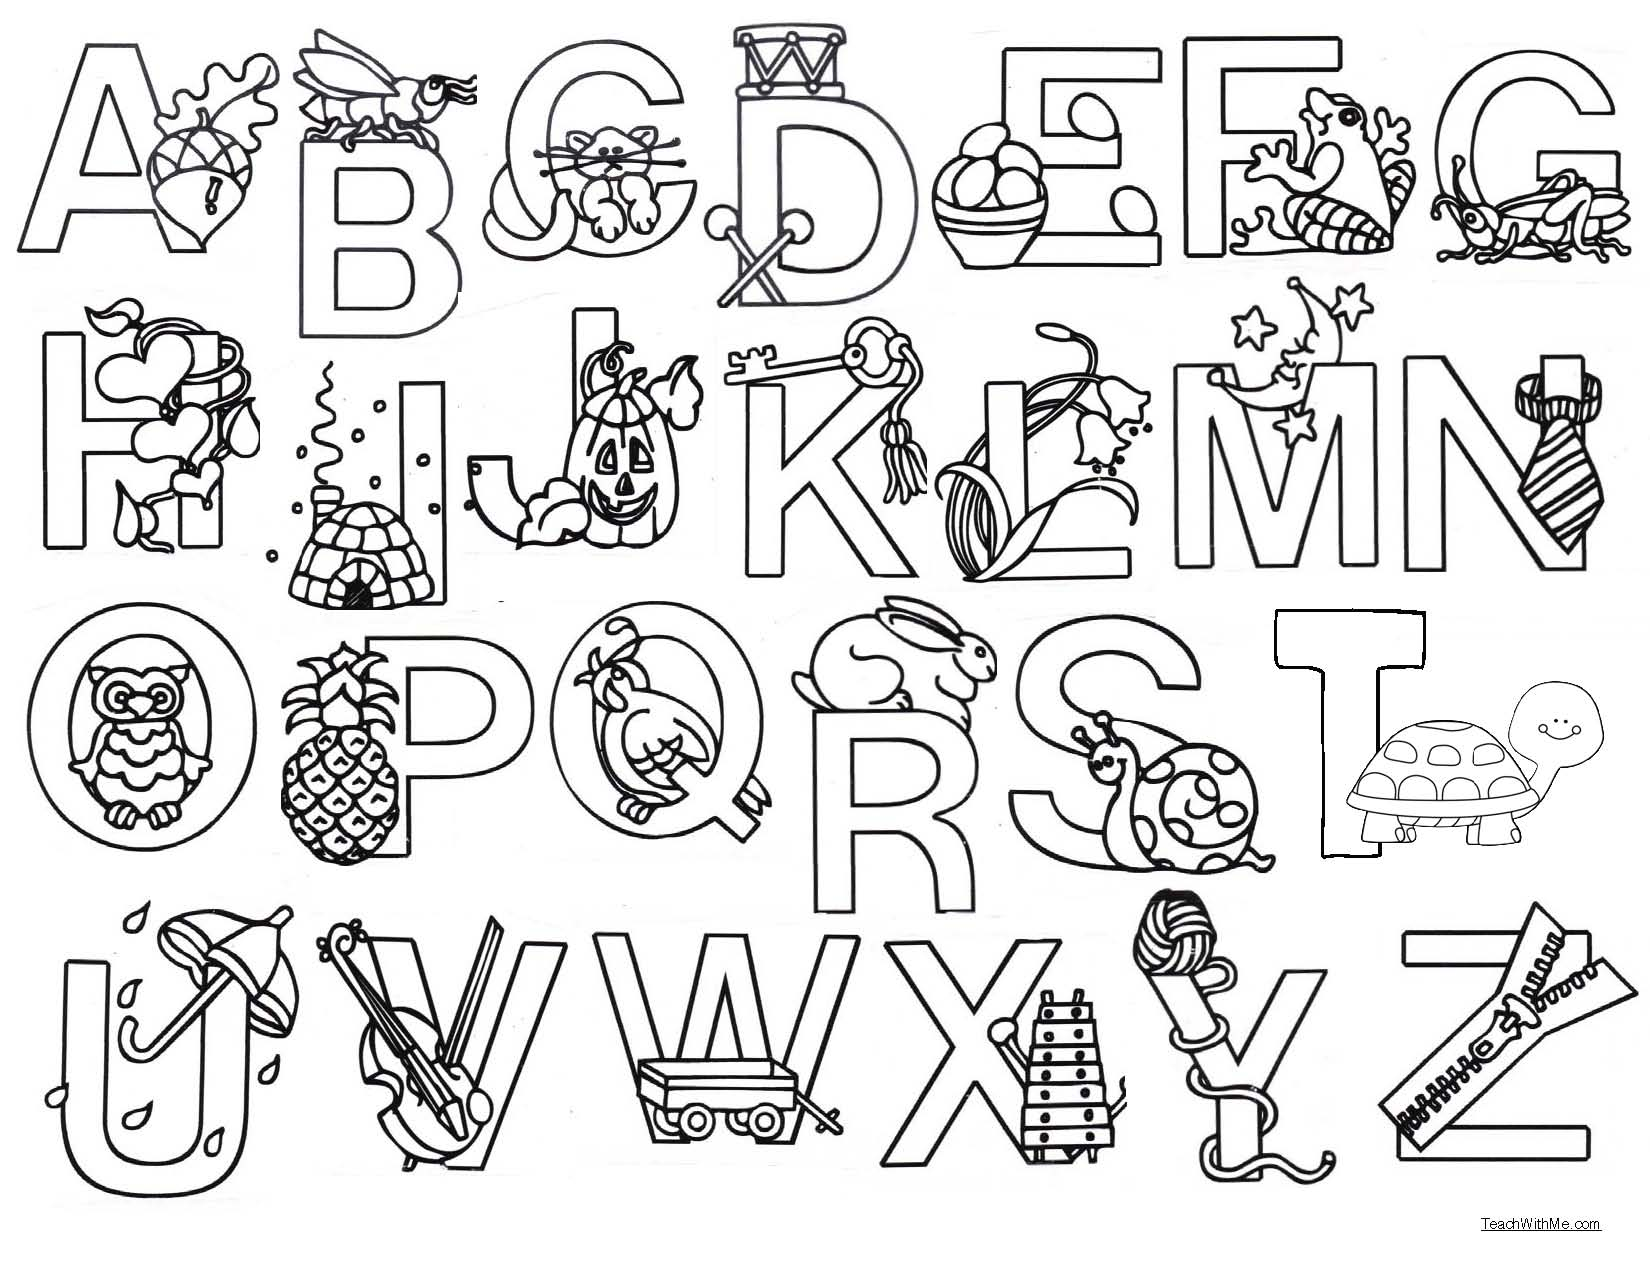 emergent reader alphabet booklet, alphabet booklets, student made alphabet booklets, alphabet poster